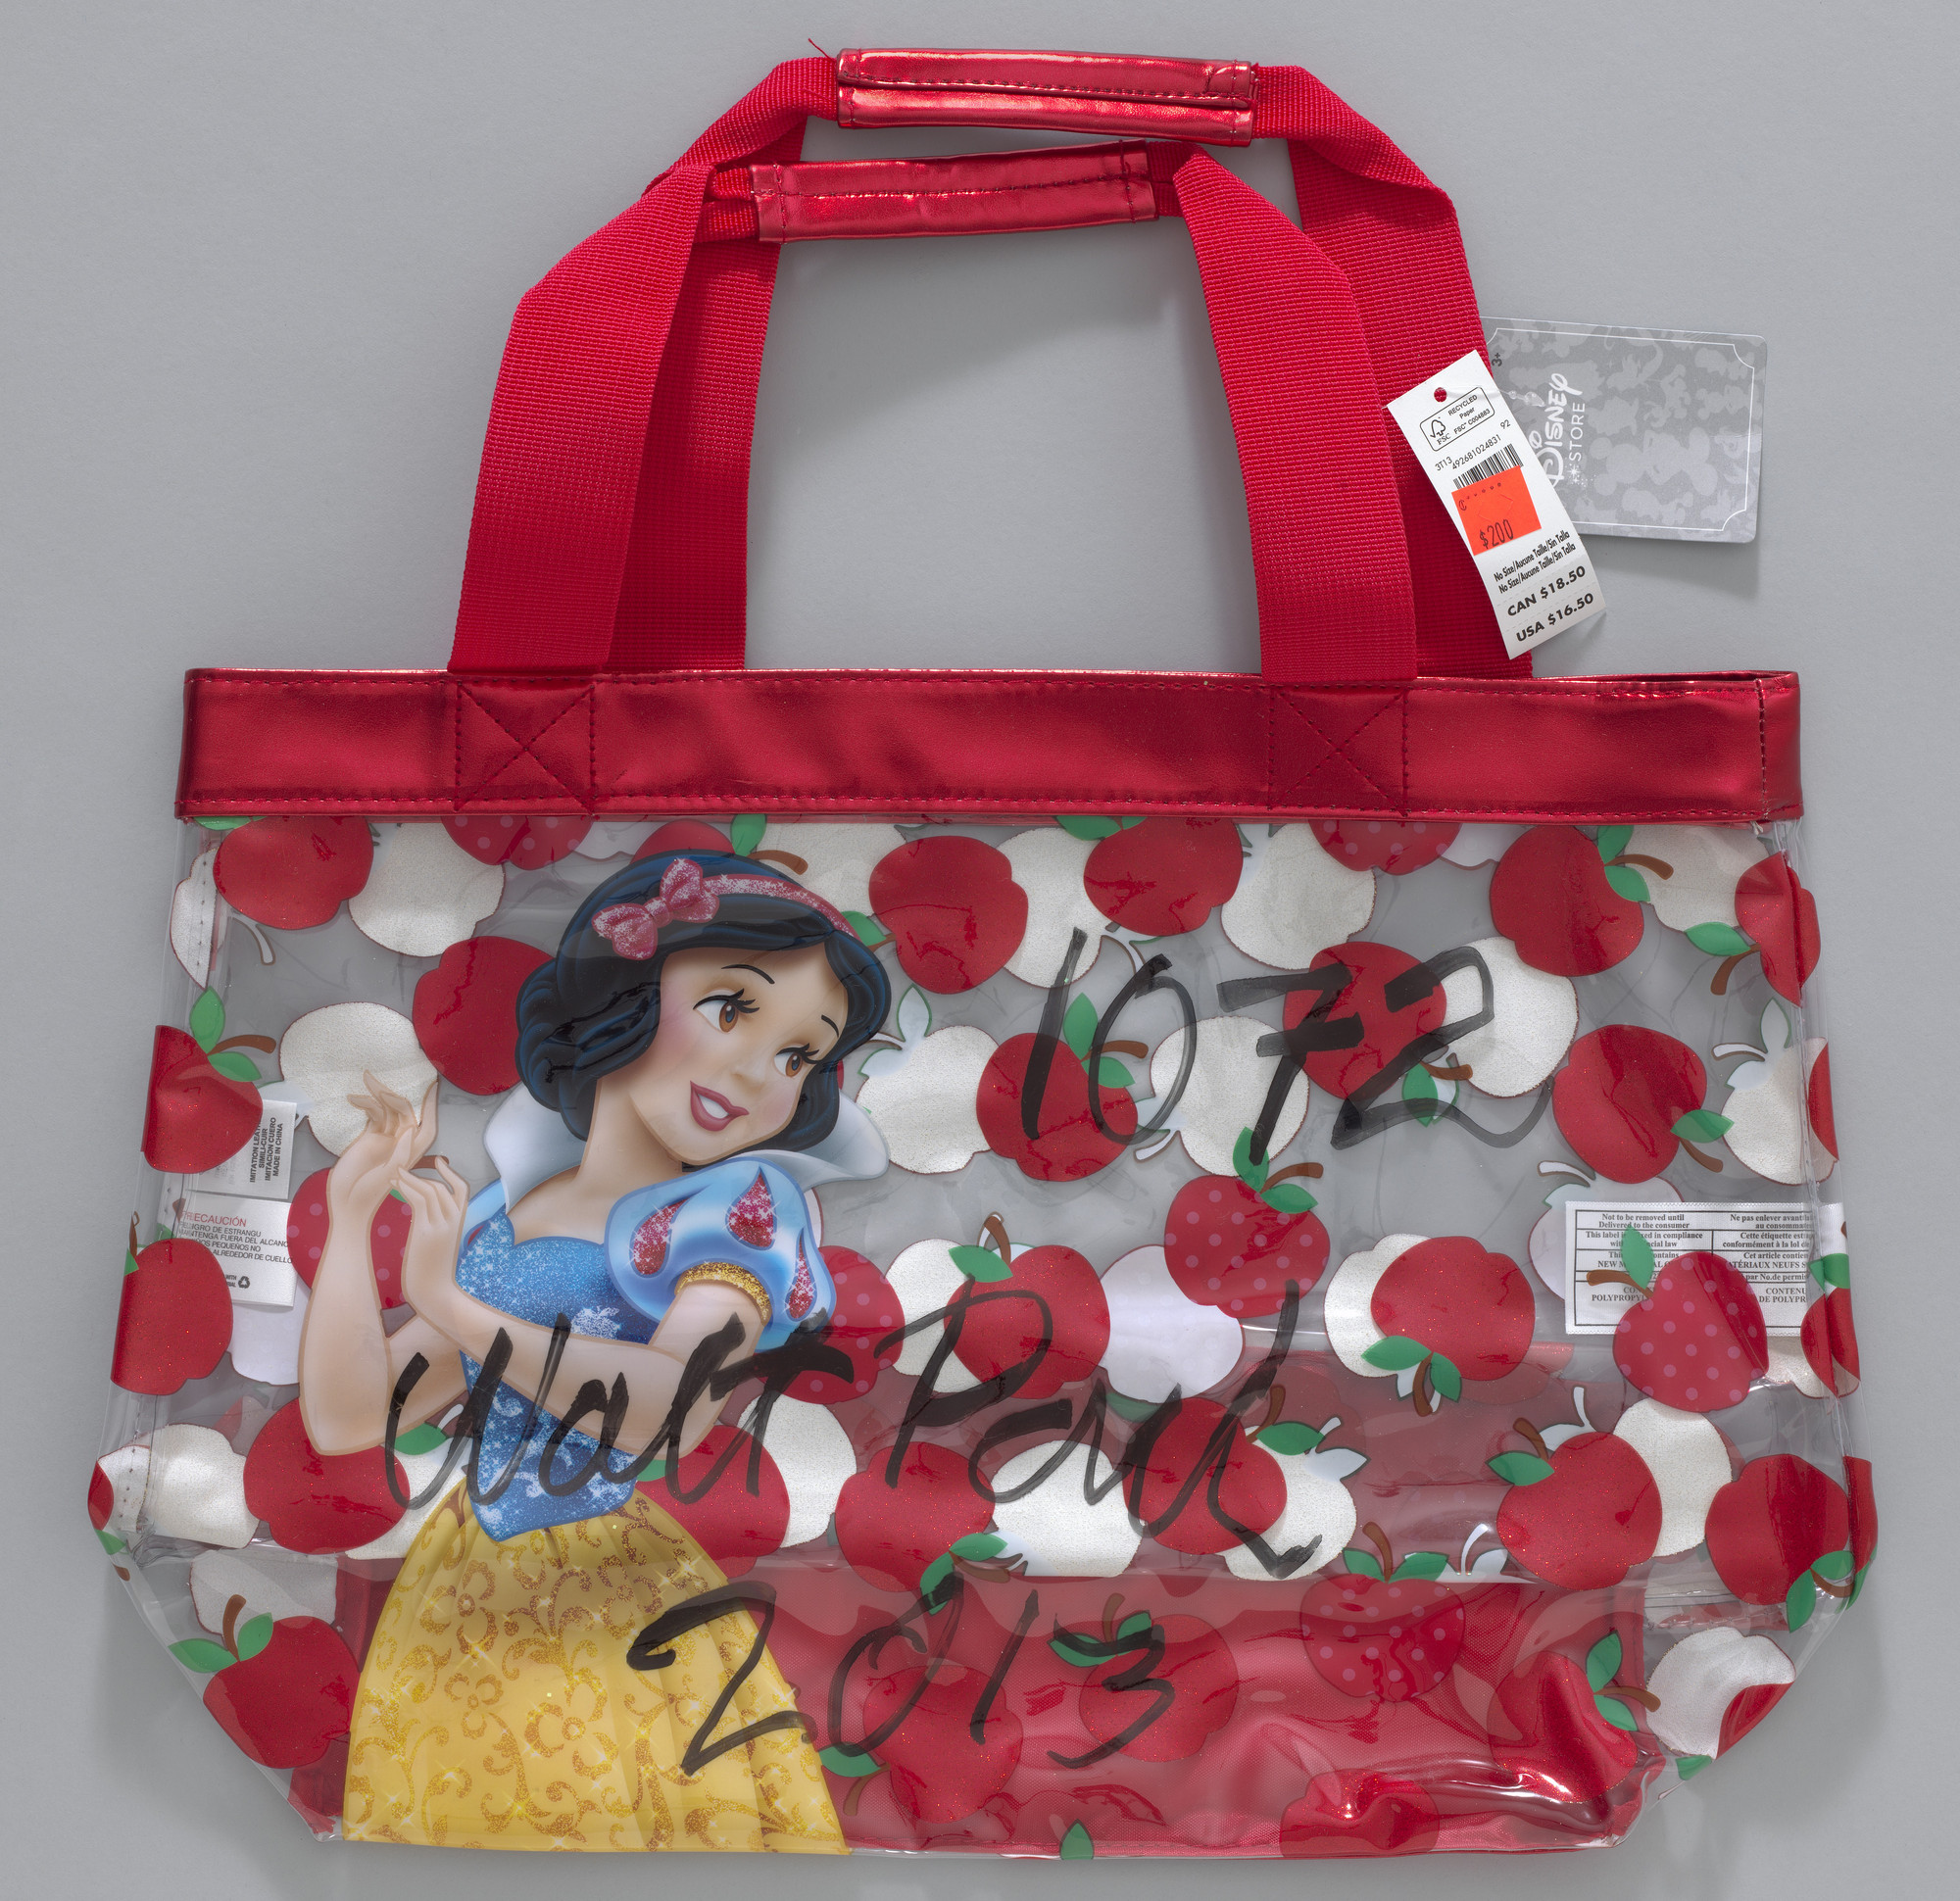 Paul McCarthy. Walt Paul Store, WS, Snow White Swim Bag with Red Apples. 2013